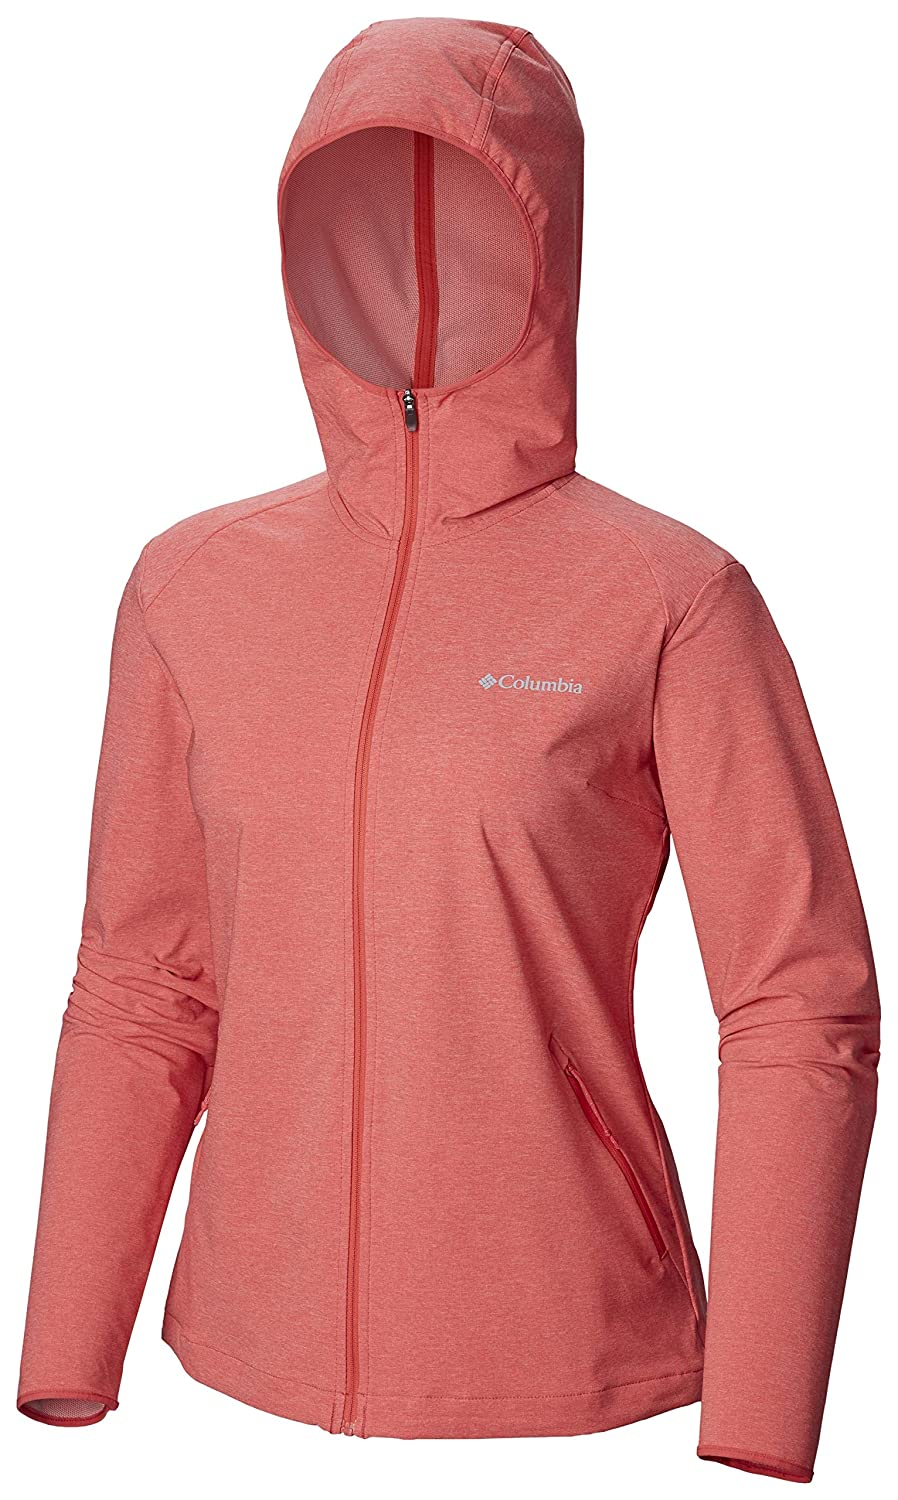 Columbia Heather Canyon Softshell Jacke Damen Softshelljacke